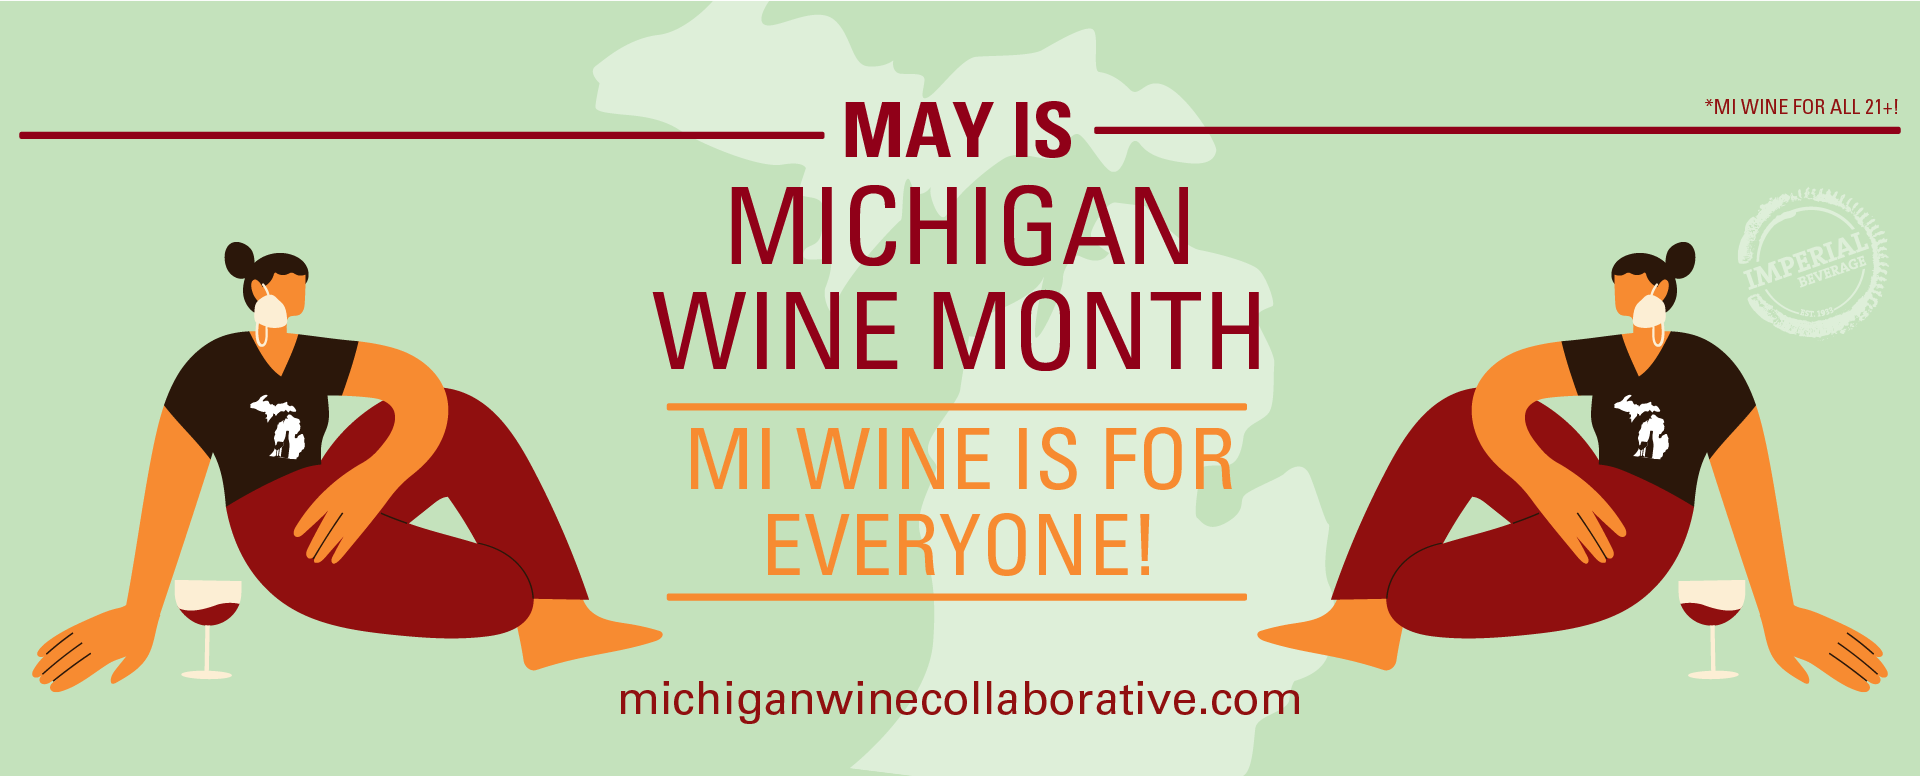 Michigan Wine Month Imperial Beverage